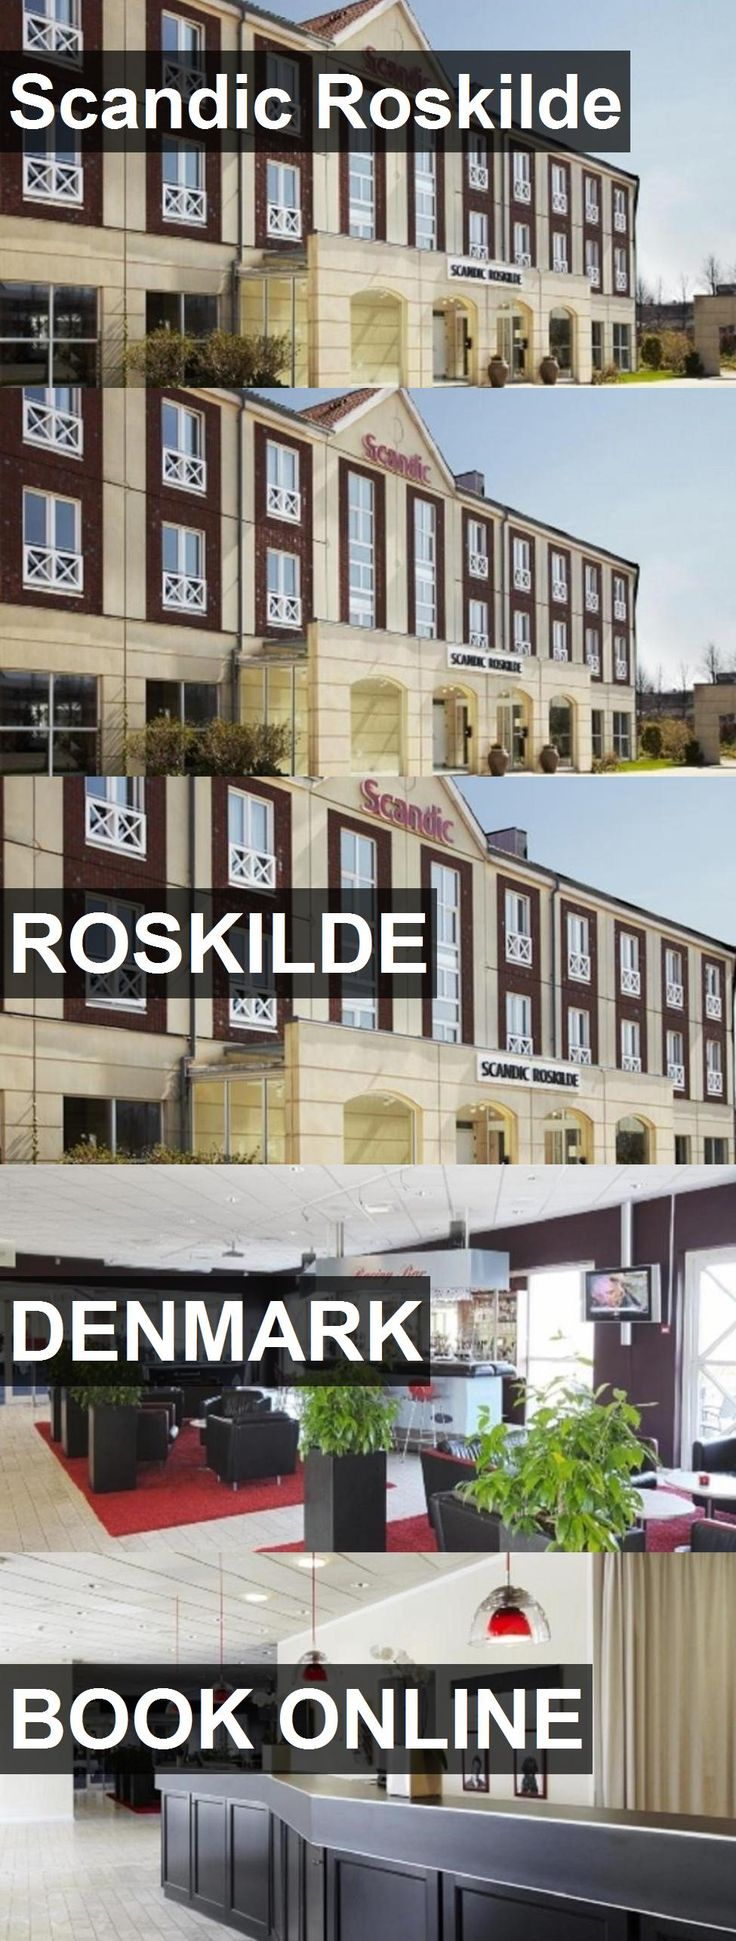 Hotel Scandic Roskilde in Roskilde, Denmark. For more information, photos, reviews and best prices please follow the link. #Denmark #Roskilde #travel #vacation #hotel